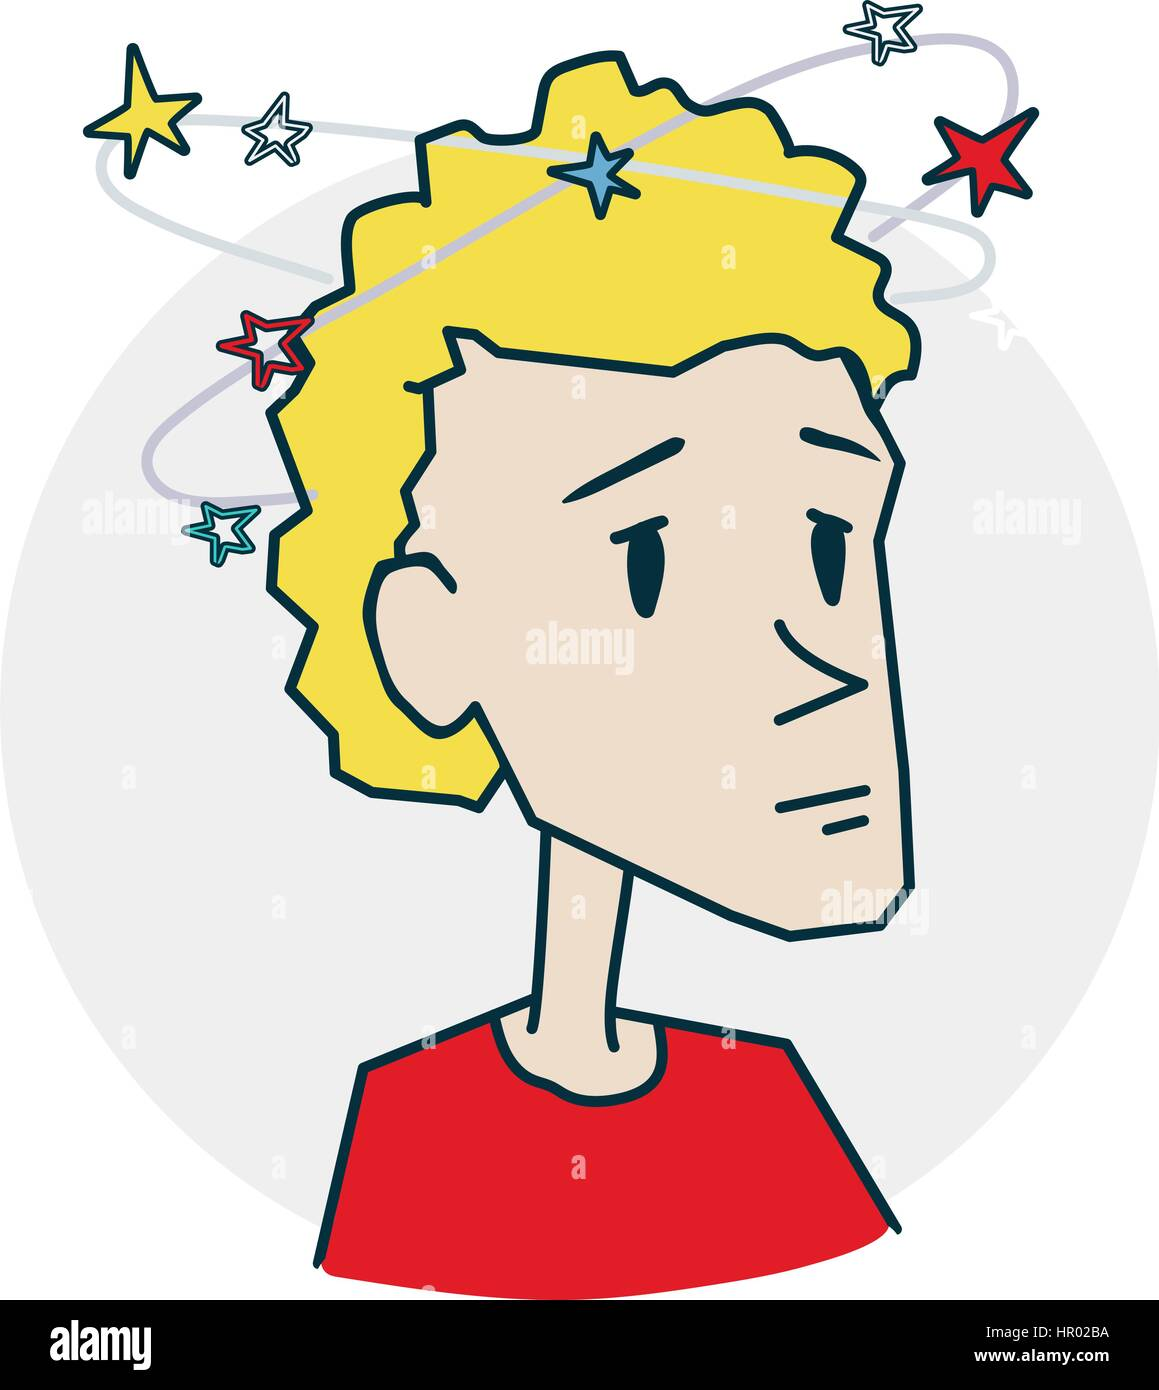 Dizzy as many asterisks around. Icon on medical subjects. Illustration of a funny cartoon style - Stock Image